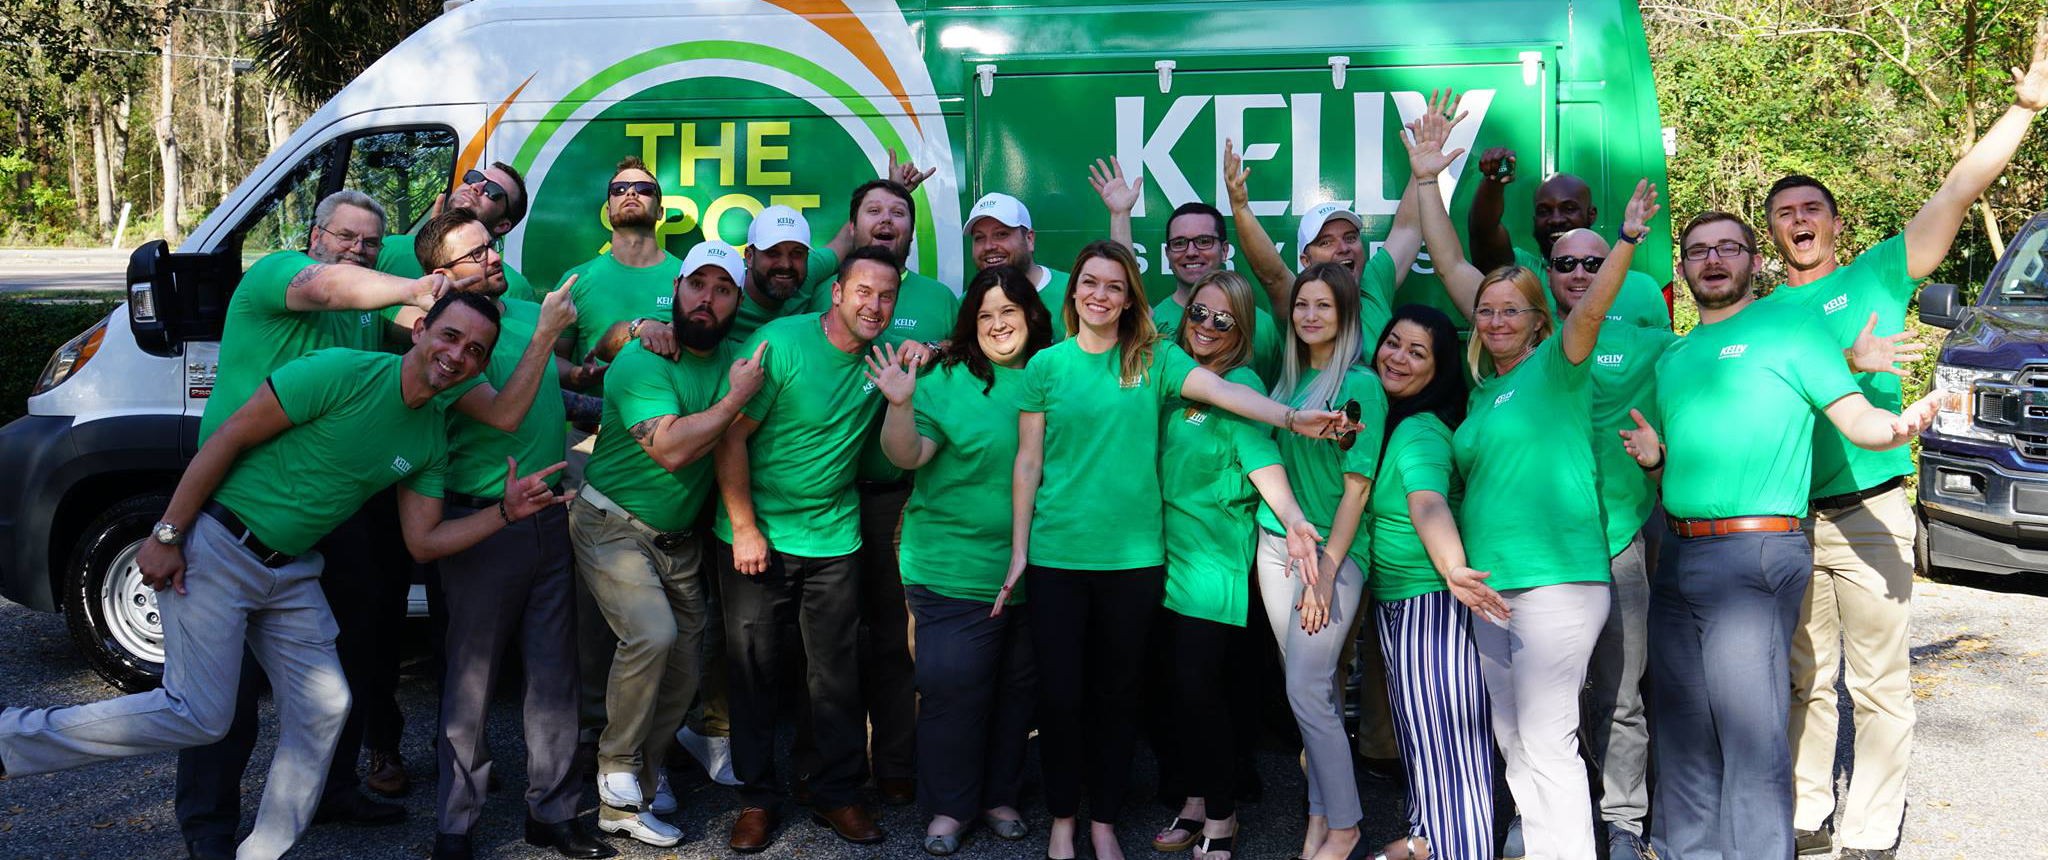 Group photo of Kelly Services employees